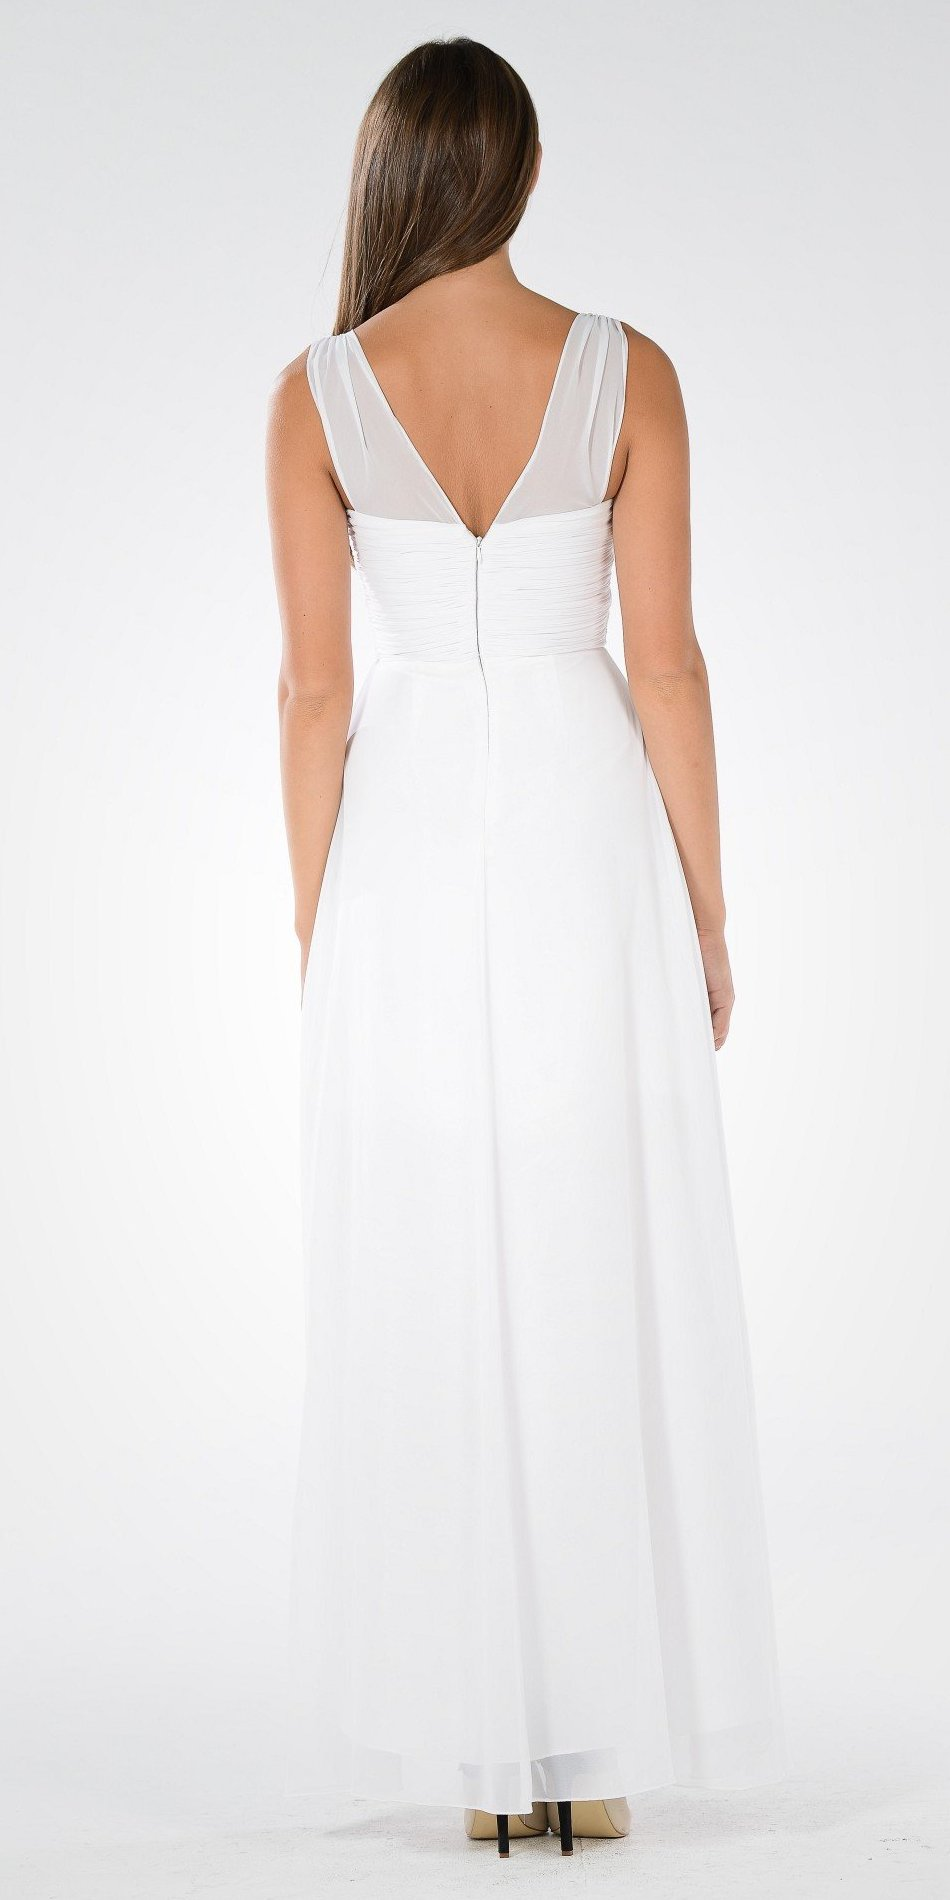 Off White V-Neck Ruched Bodice Empire Waist Chiffon Long Bridesmaids Dress